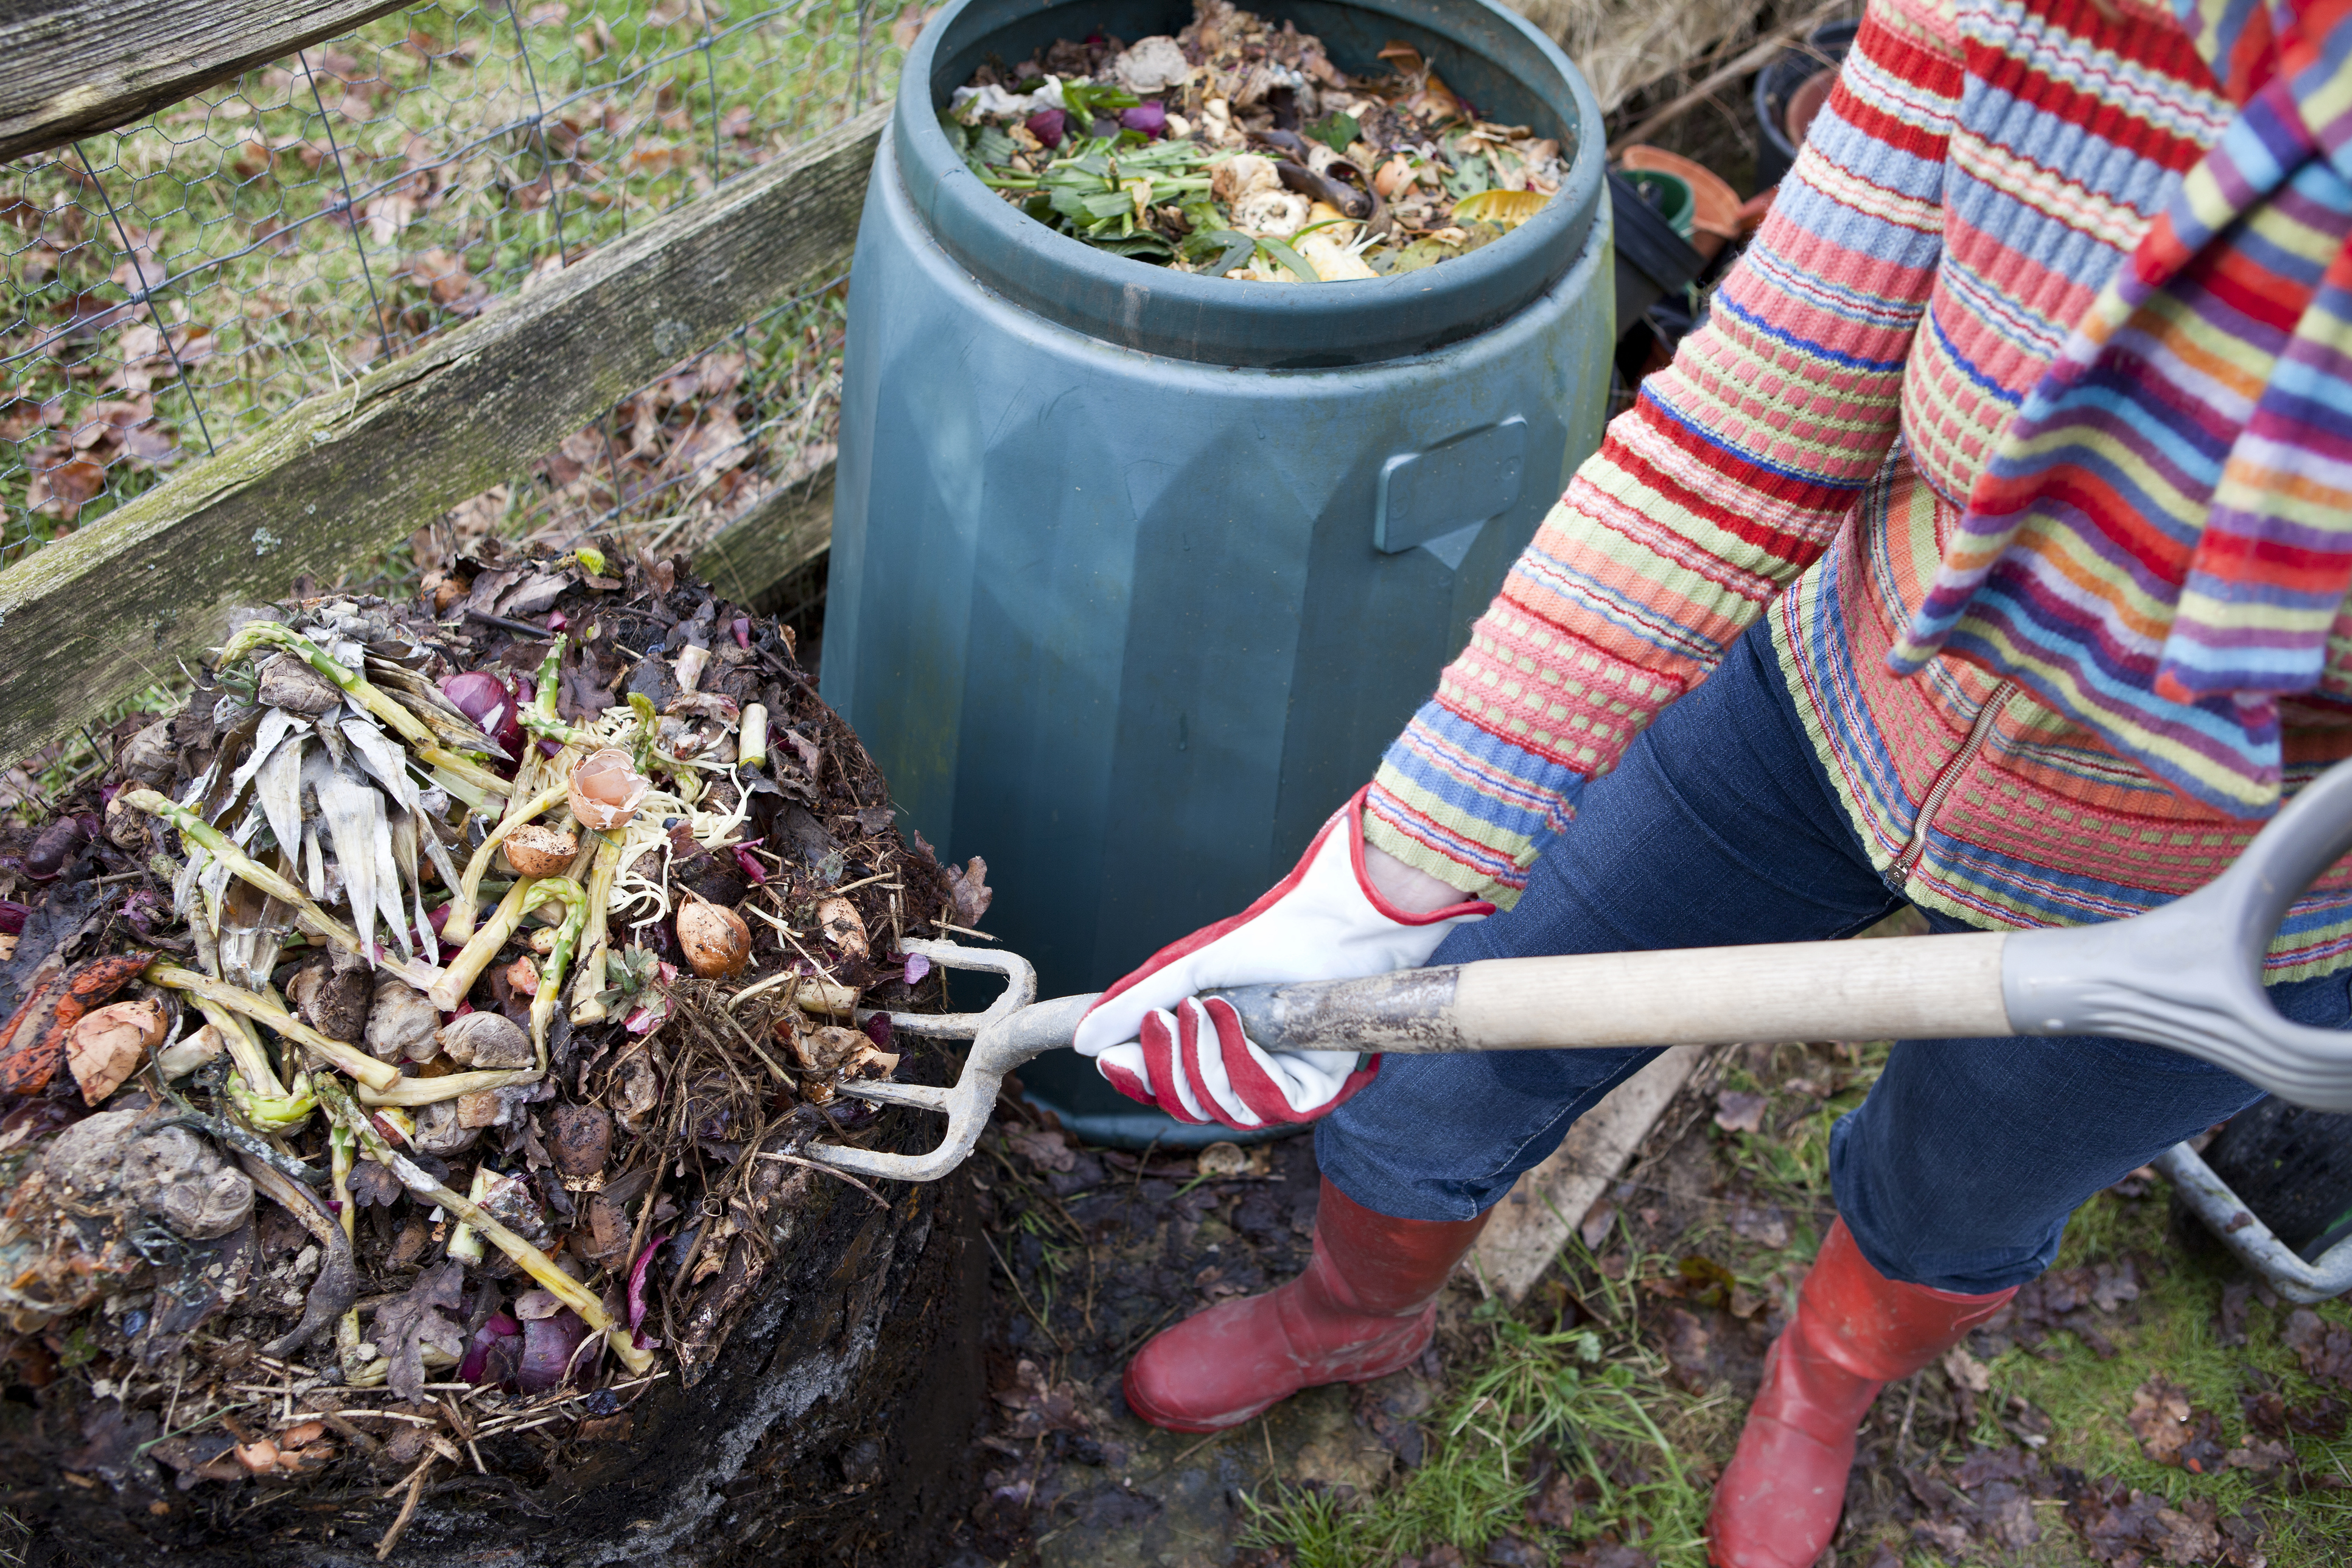 Woman moving composting materials with pitchfork